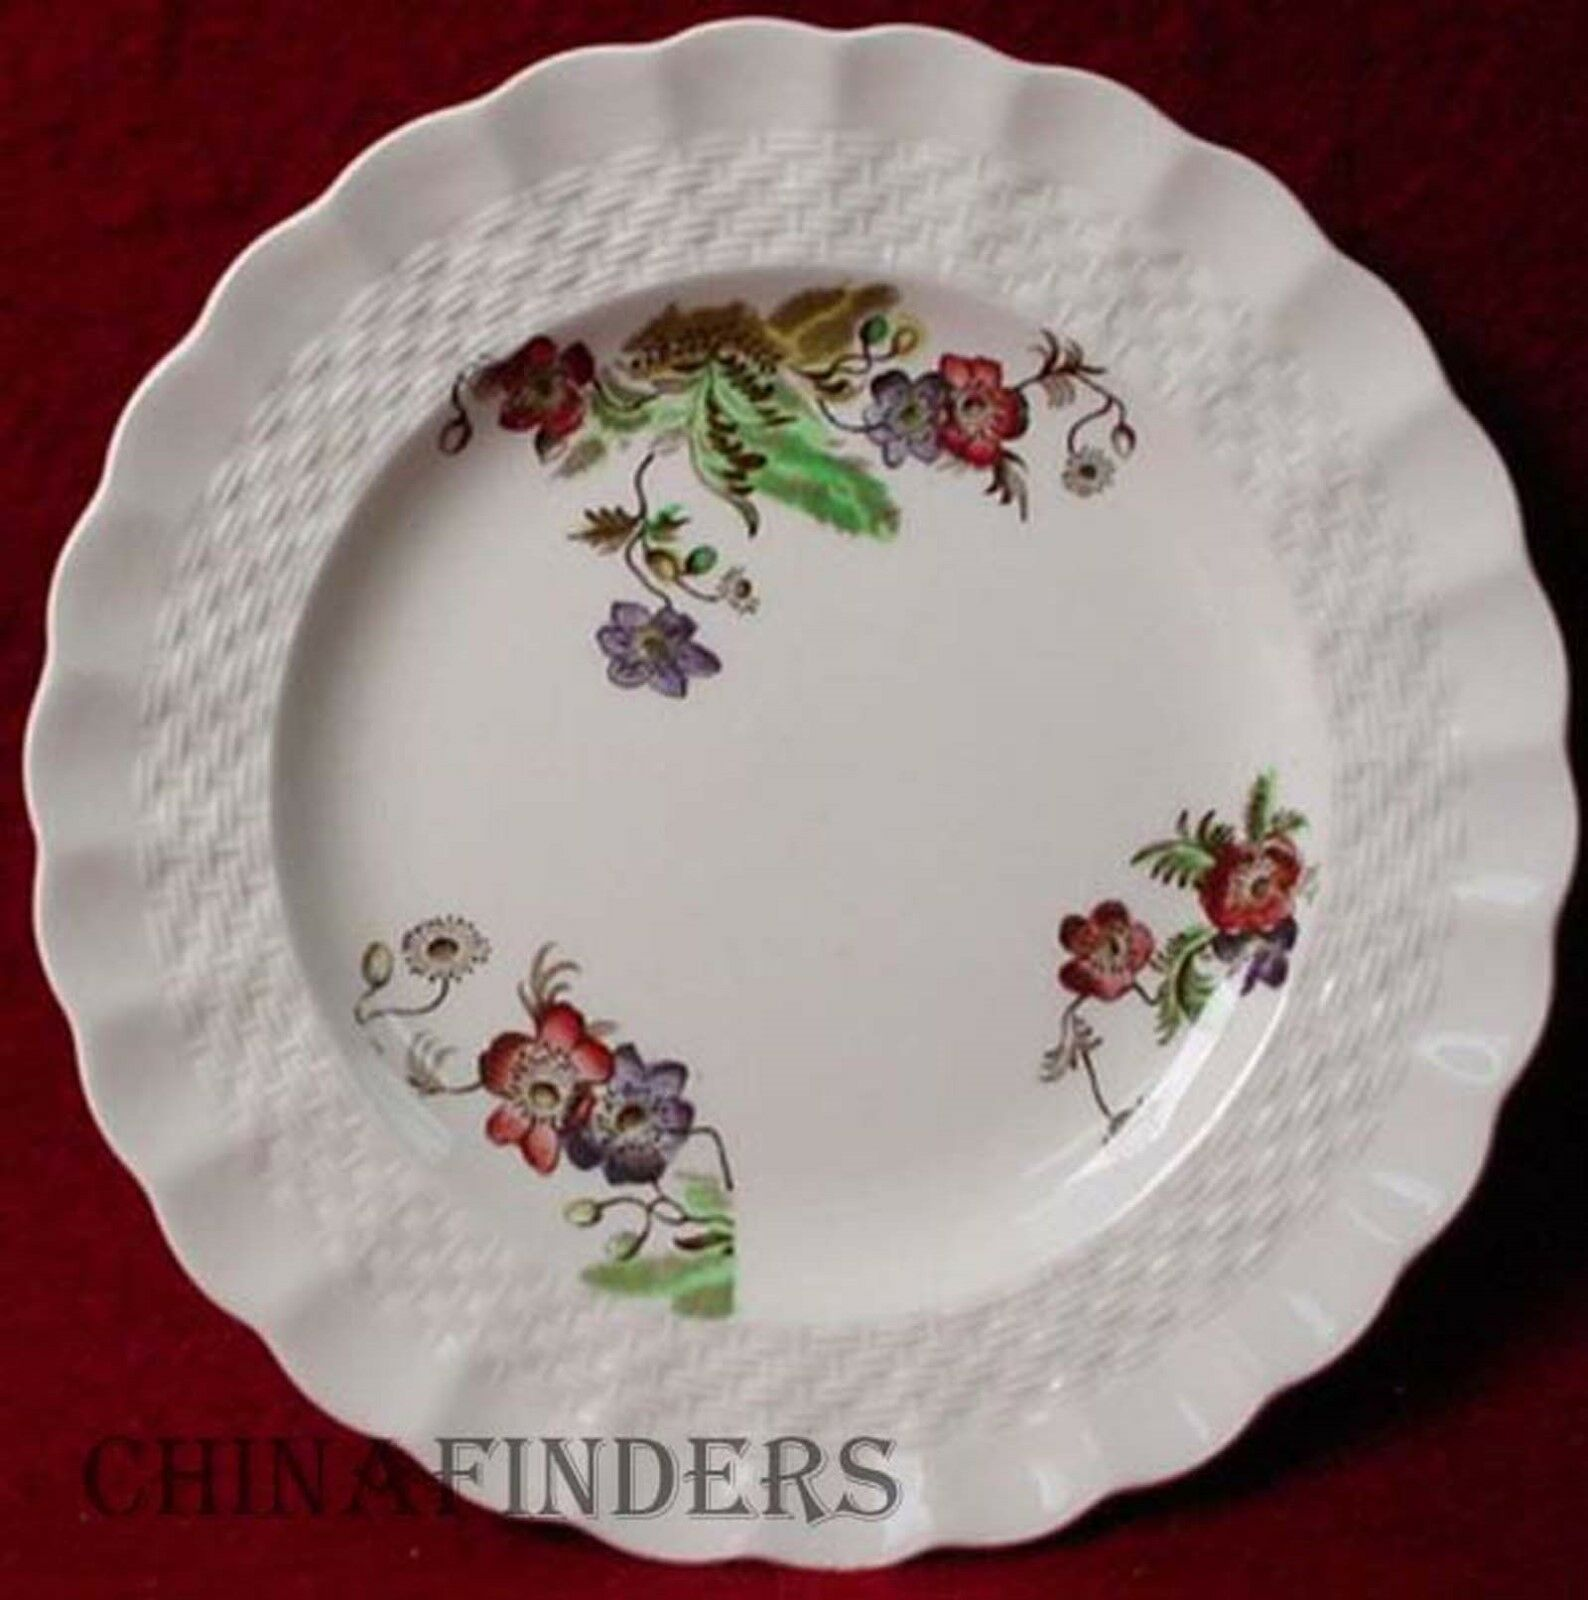 SPODE china WICKER LANE 2/7519 pattern 60 Piece Set - cup dinner salad bread